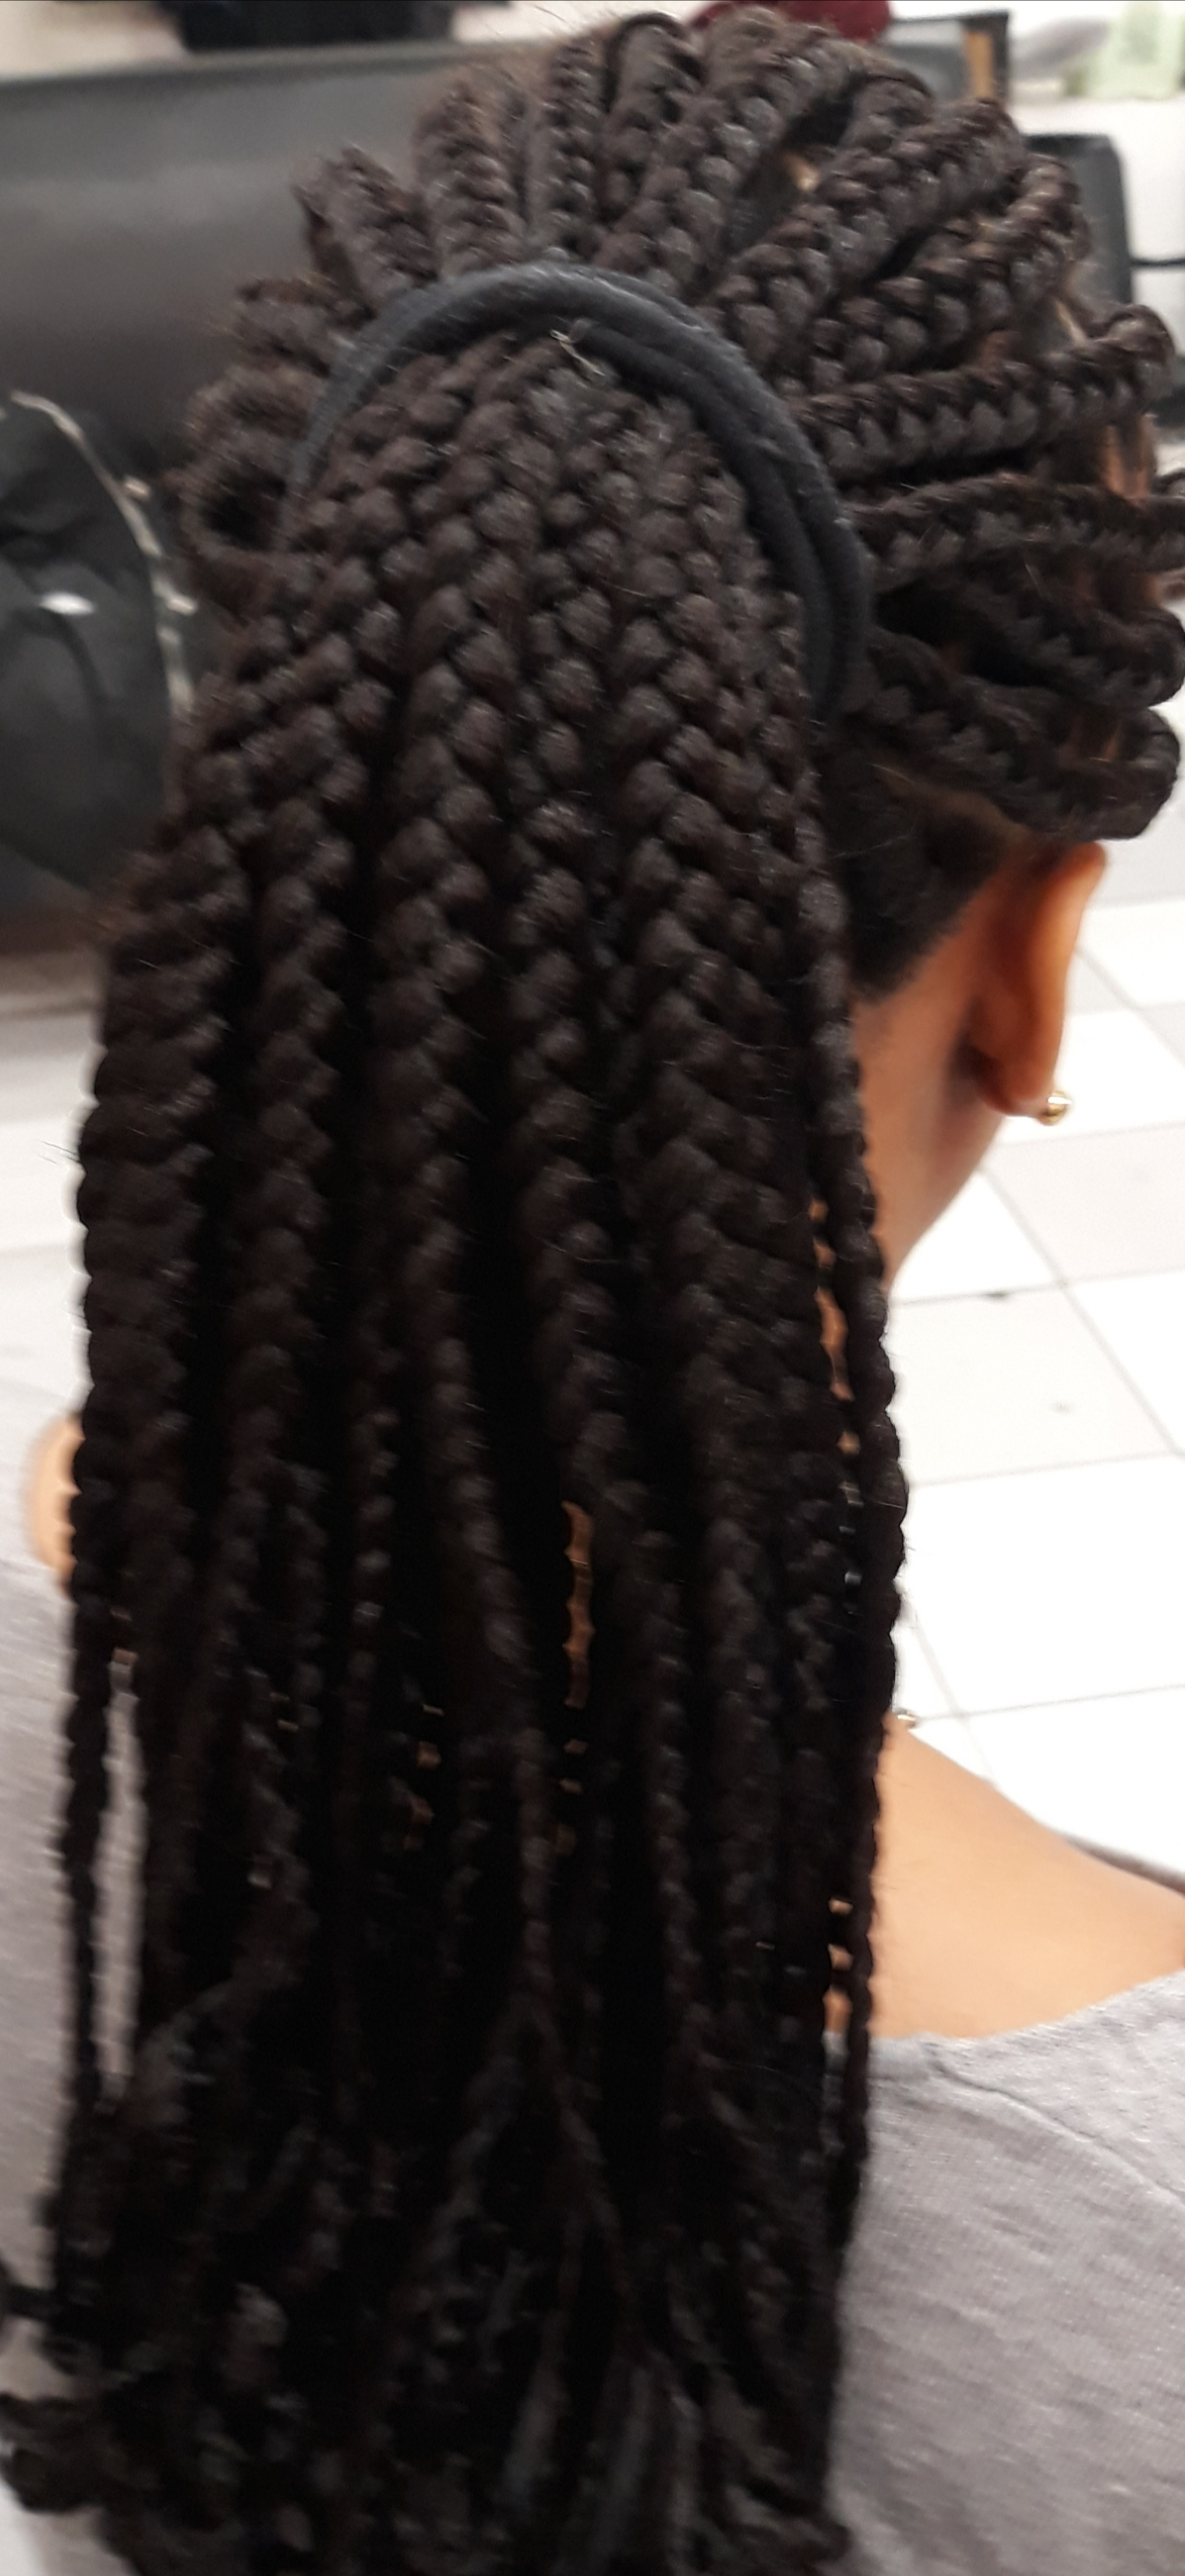 salon de coiffure afro tresse tresses box braids crochet braids vanilles tissages paris 75 77 78 91 92 93 94 95 MTRIOEIP